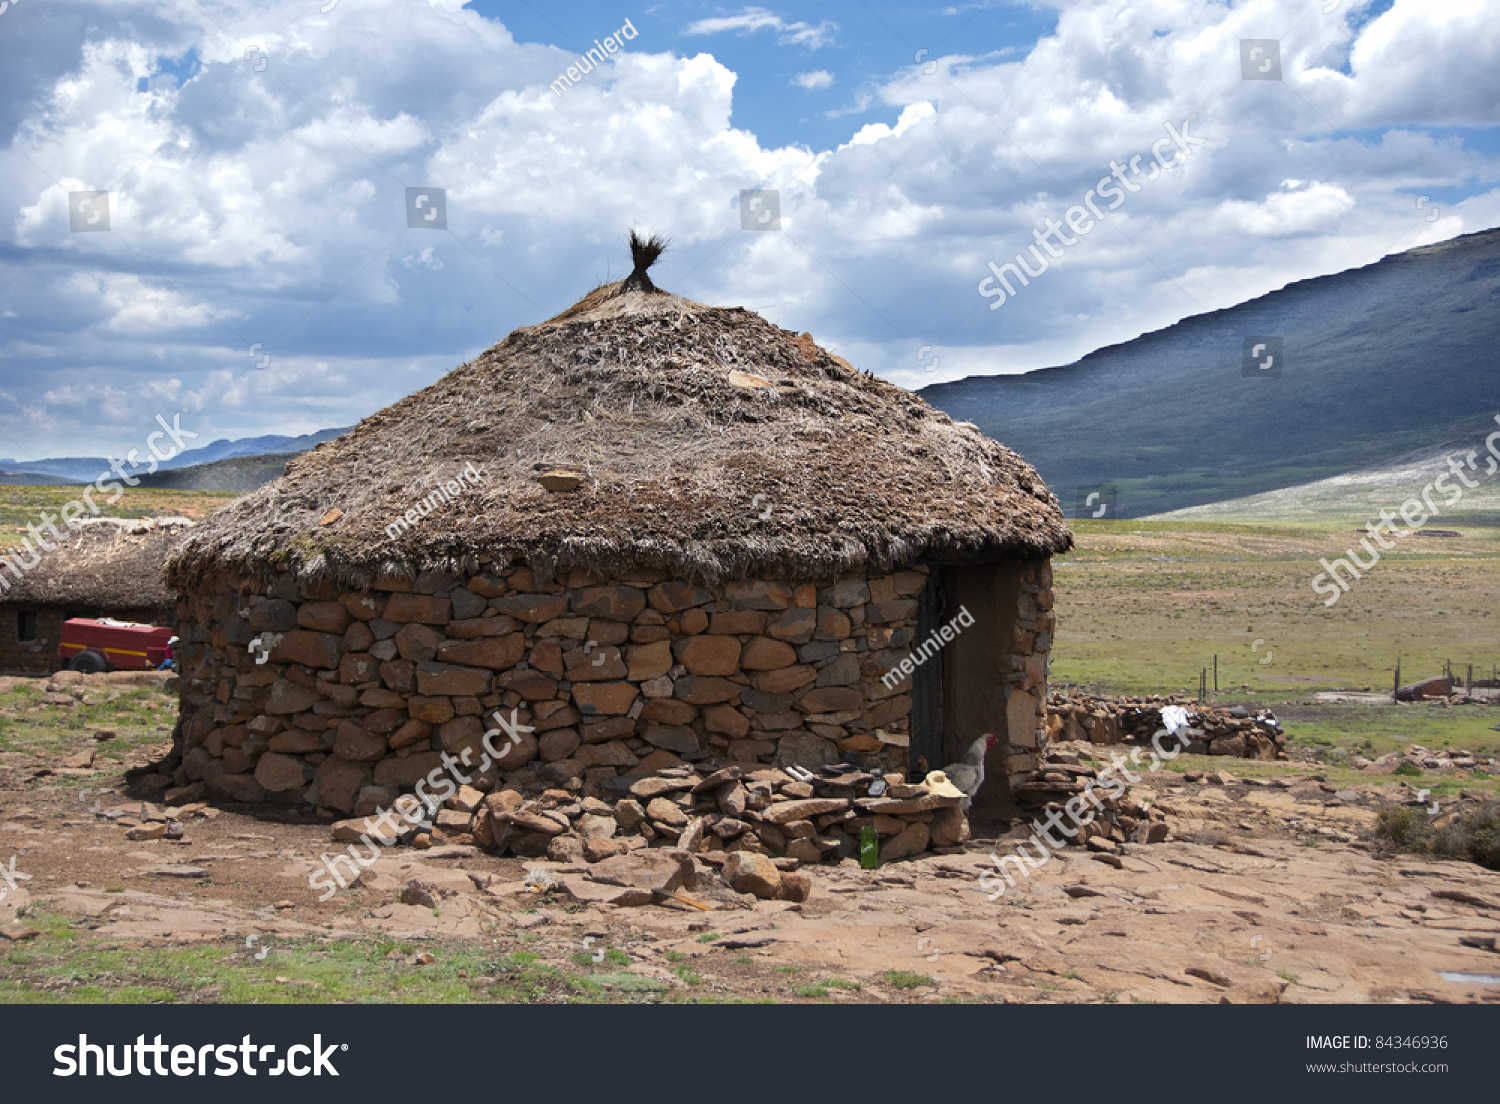 Traditional style of housing in lesotho is called a rondavel the rondavels walls are often